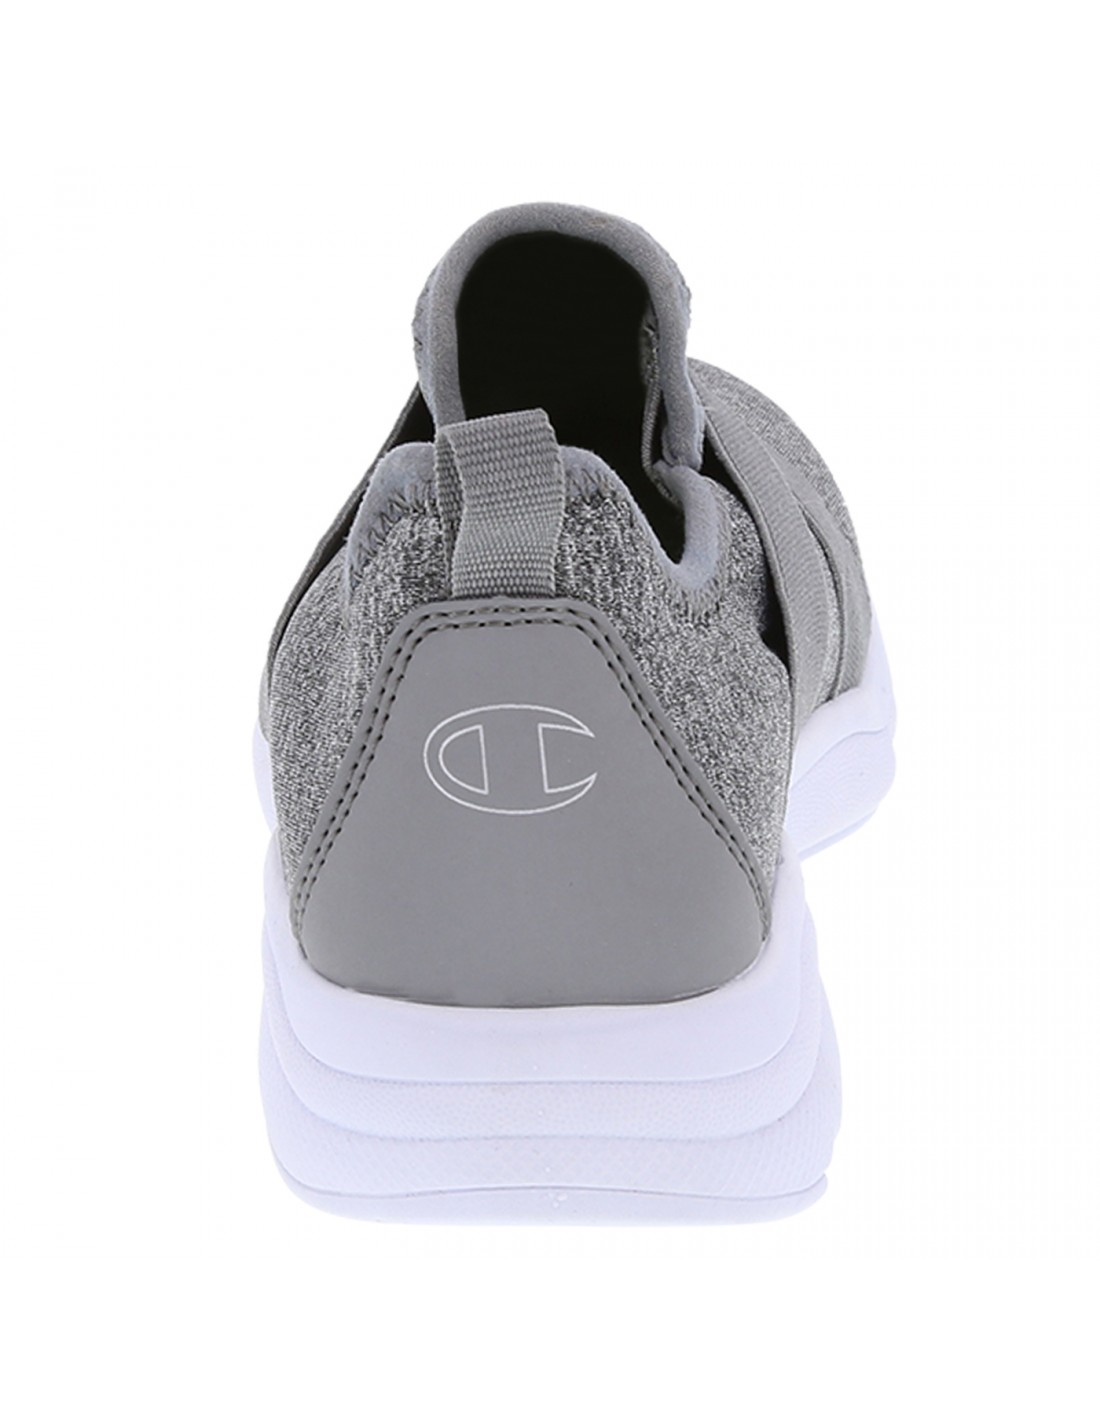 daeae09af27c2 Women s Rival Slip-On sneaker - Grey. On sale! Previous